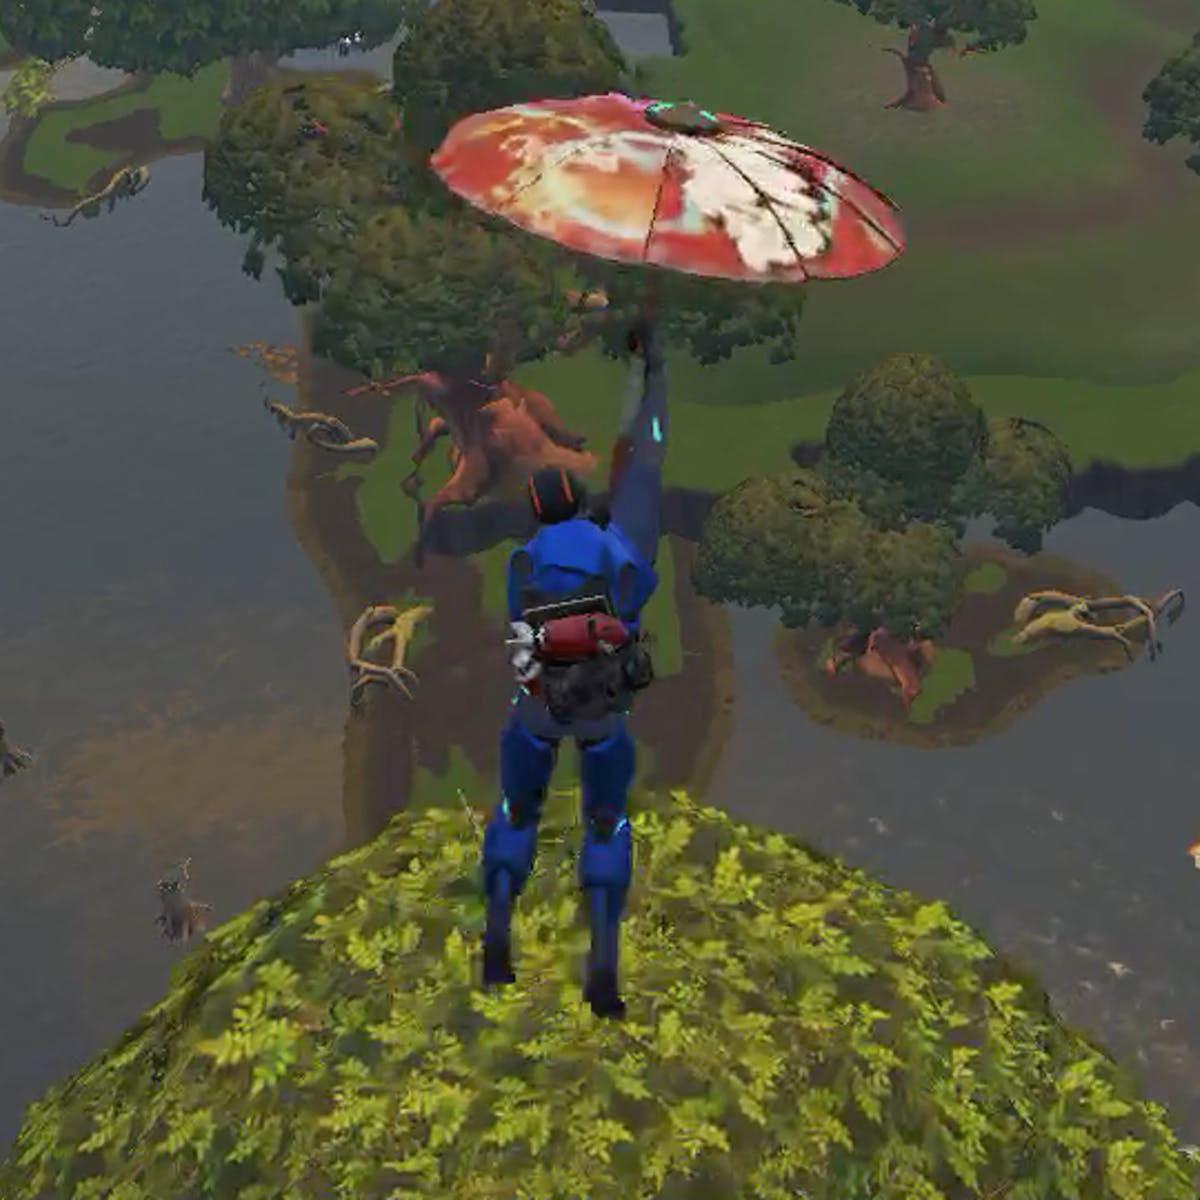 fortnite challenge location bench ice cream truck and helicopter - fortnite between a bench ice cream truck and helicopter